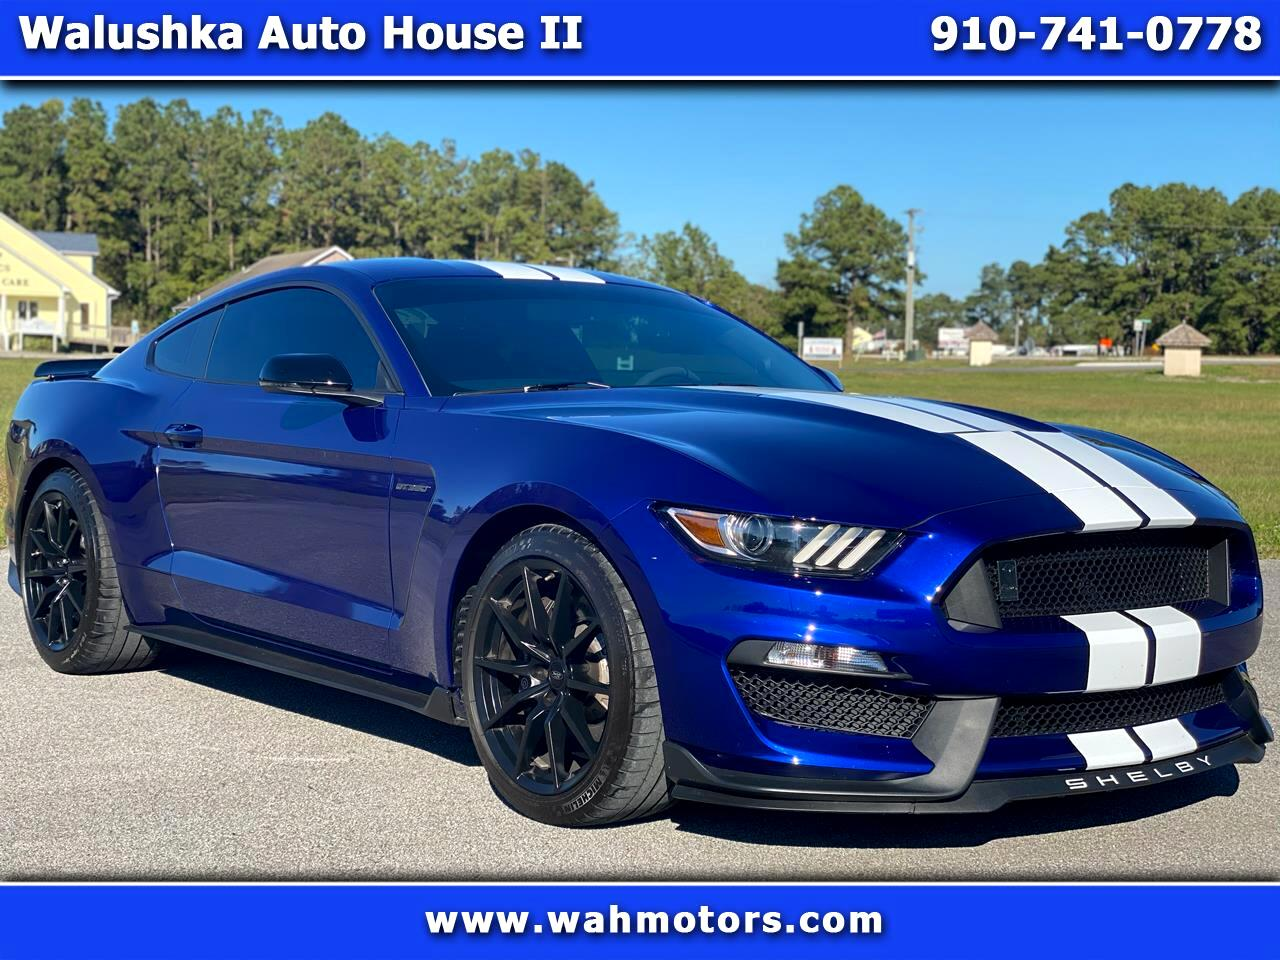 Ford Mustang 2dr Fastback Shelby GT350 2016